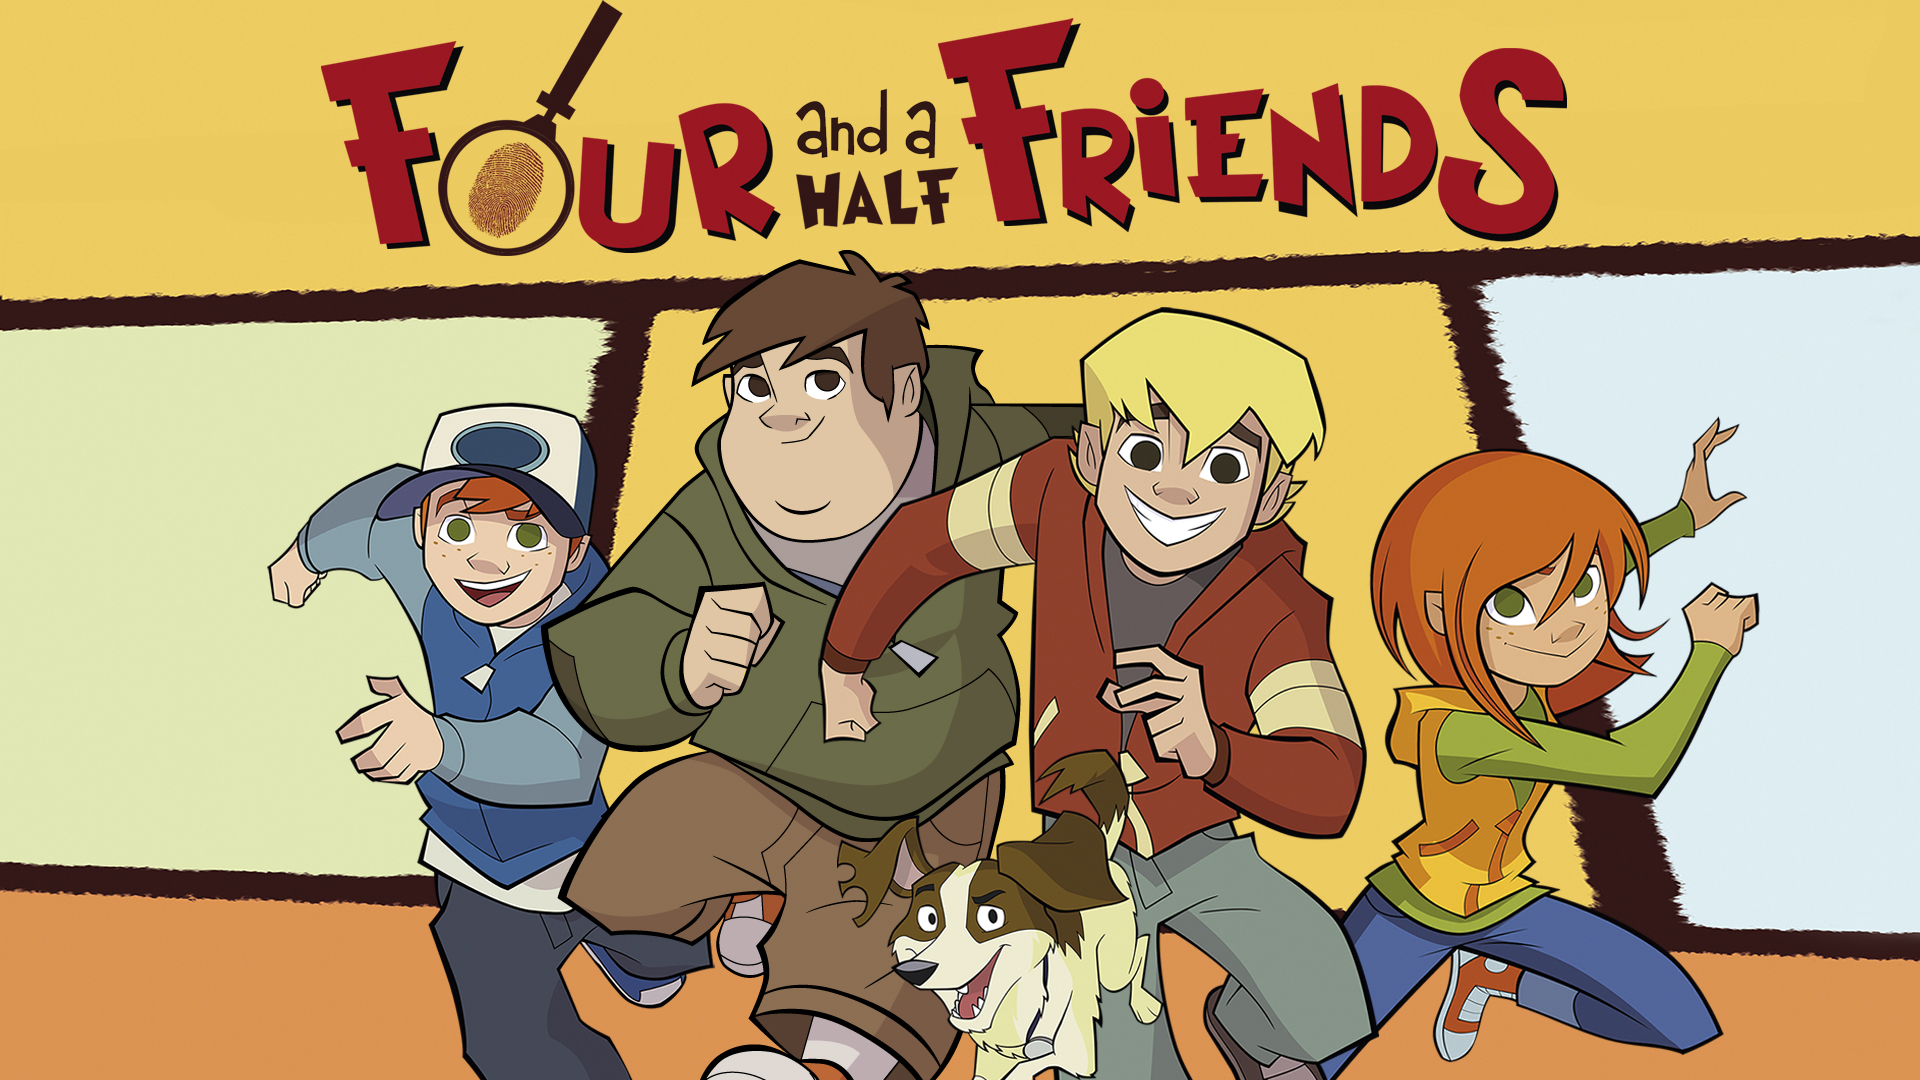 Four and a Half Friends